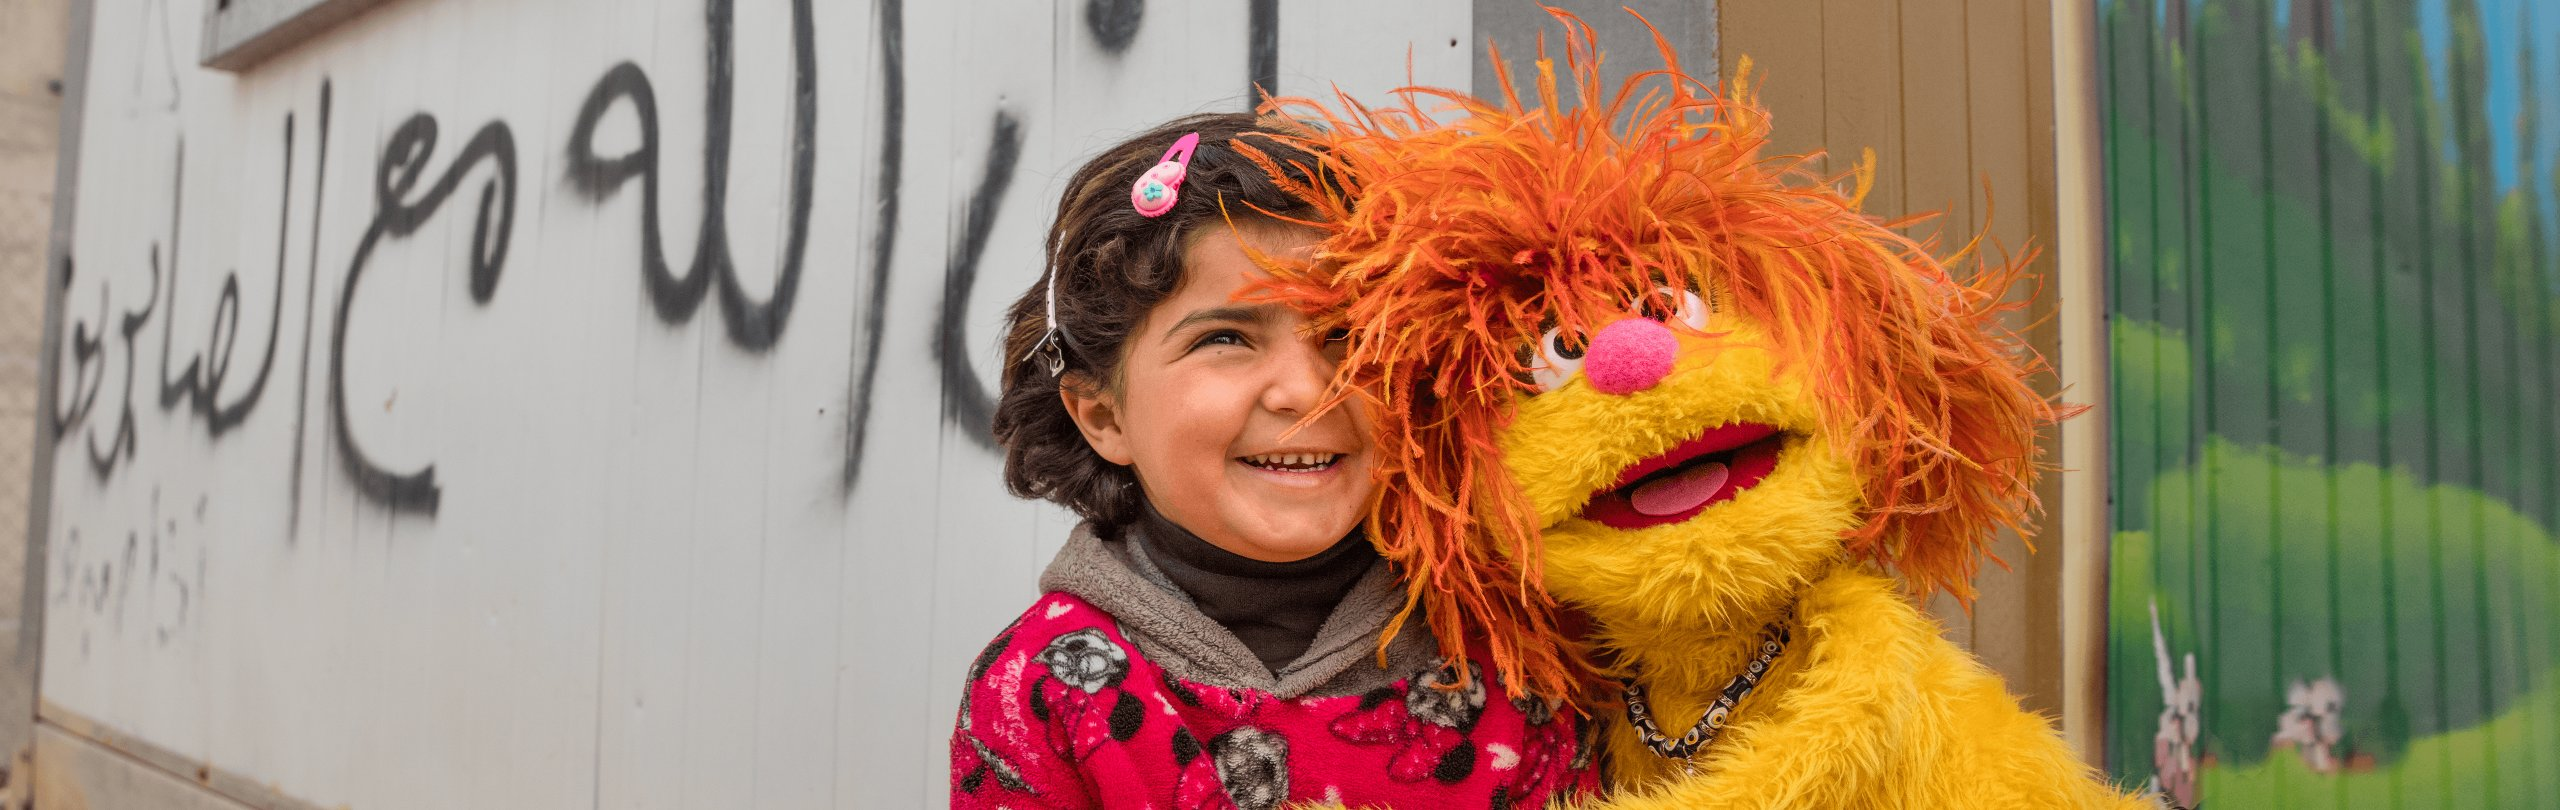 Muppet and Young Girl Smile and Hug